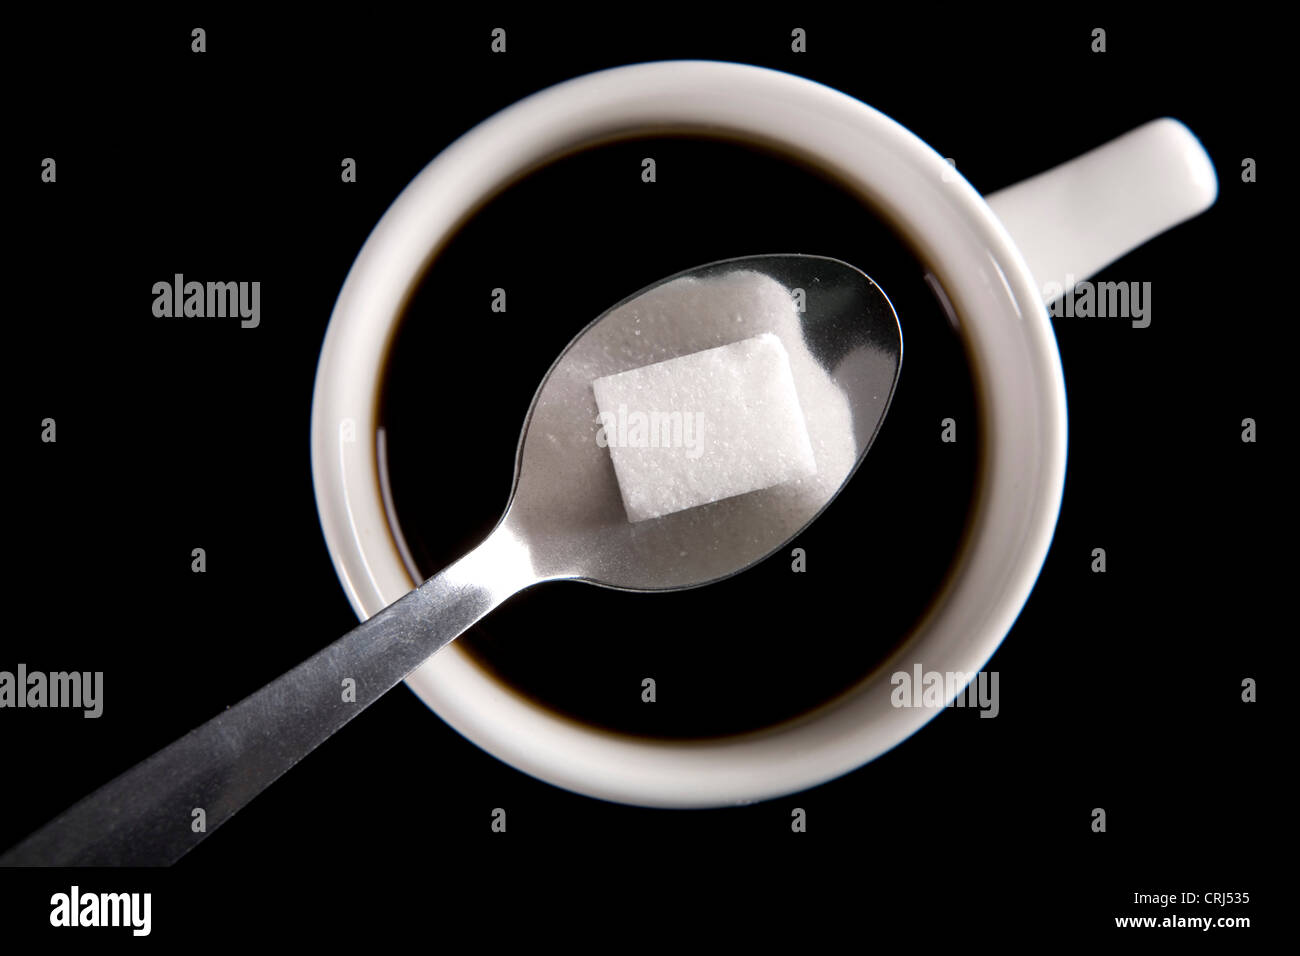 Sugar lump being added to a cup of coffee - Stock Image